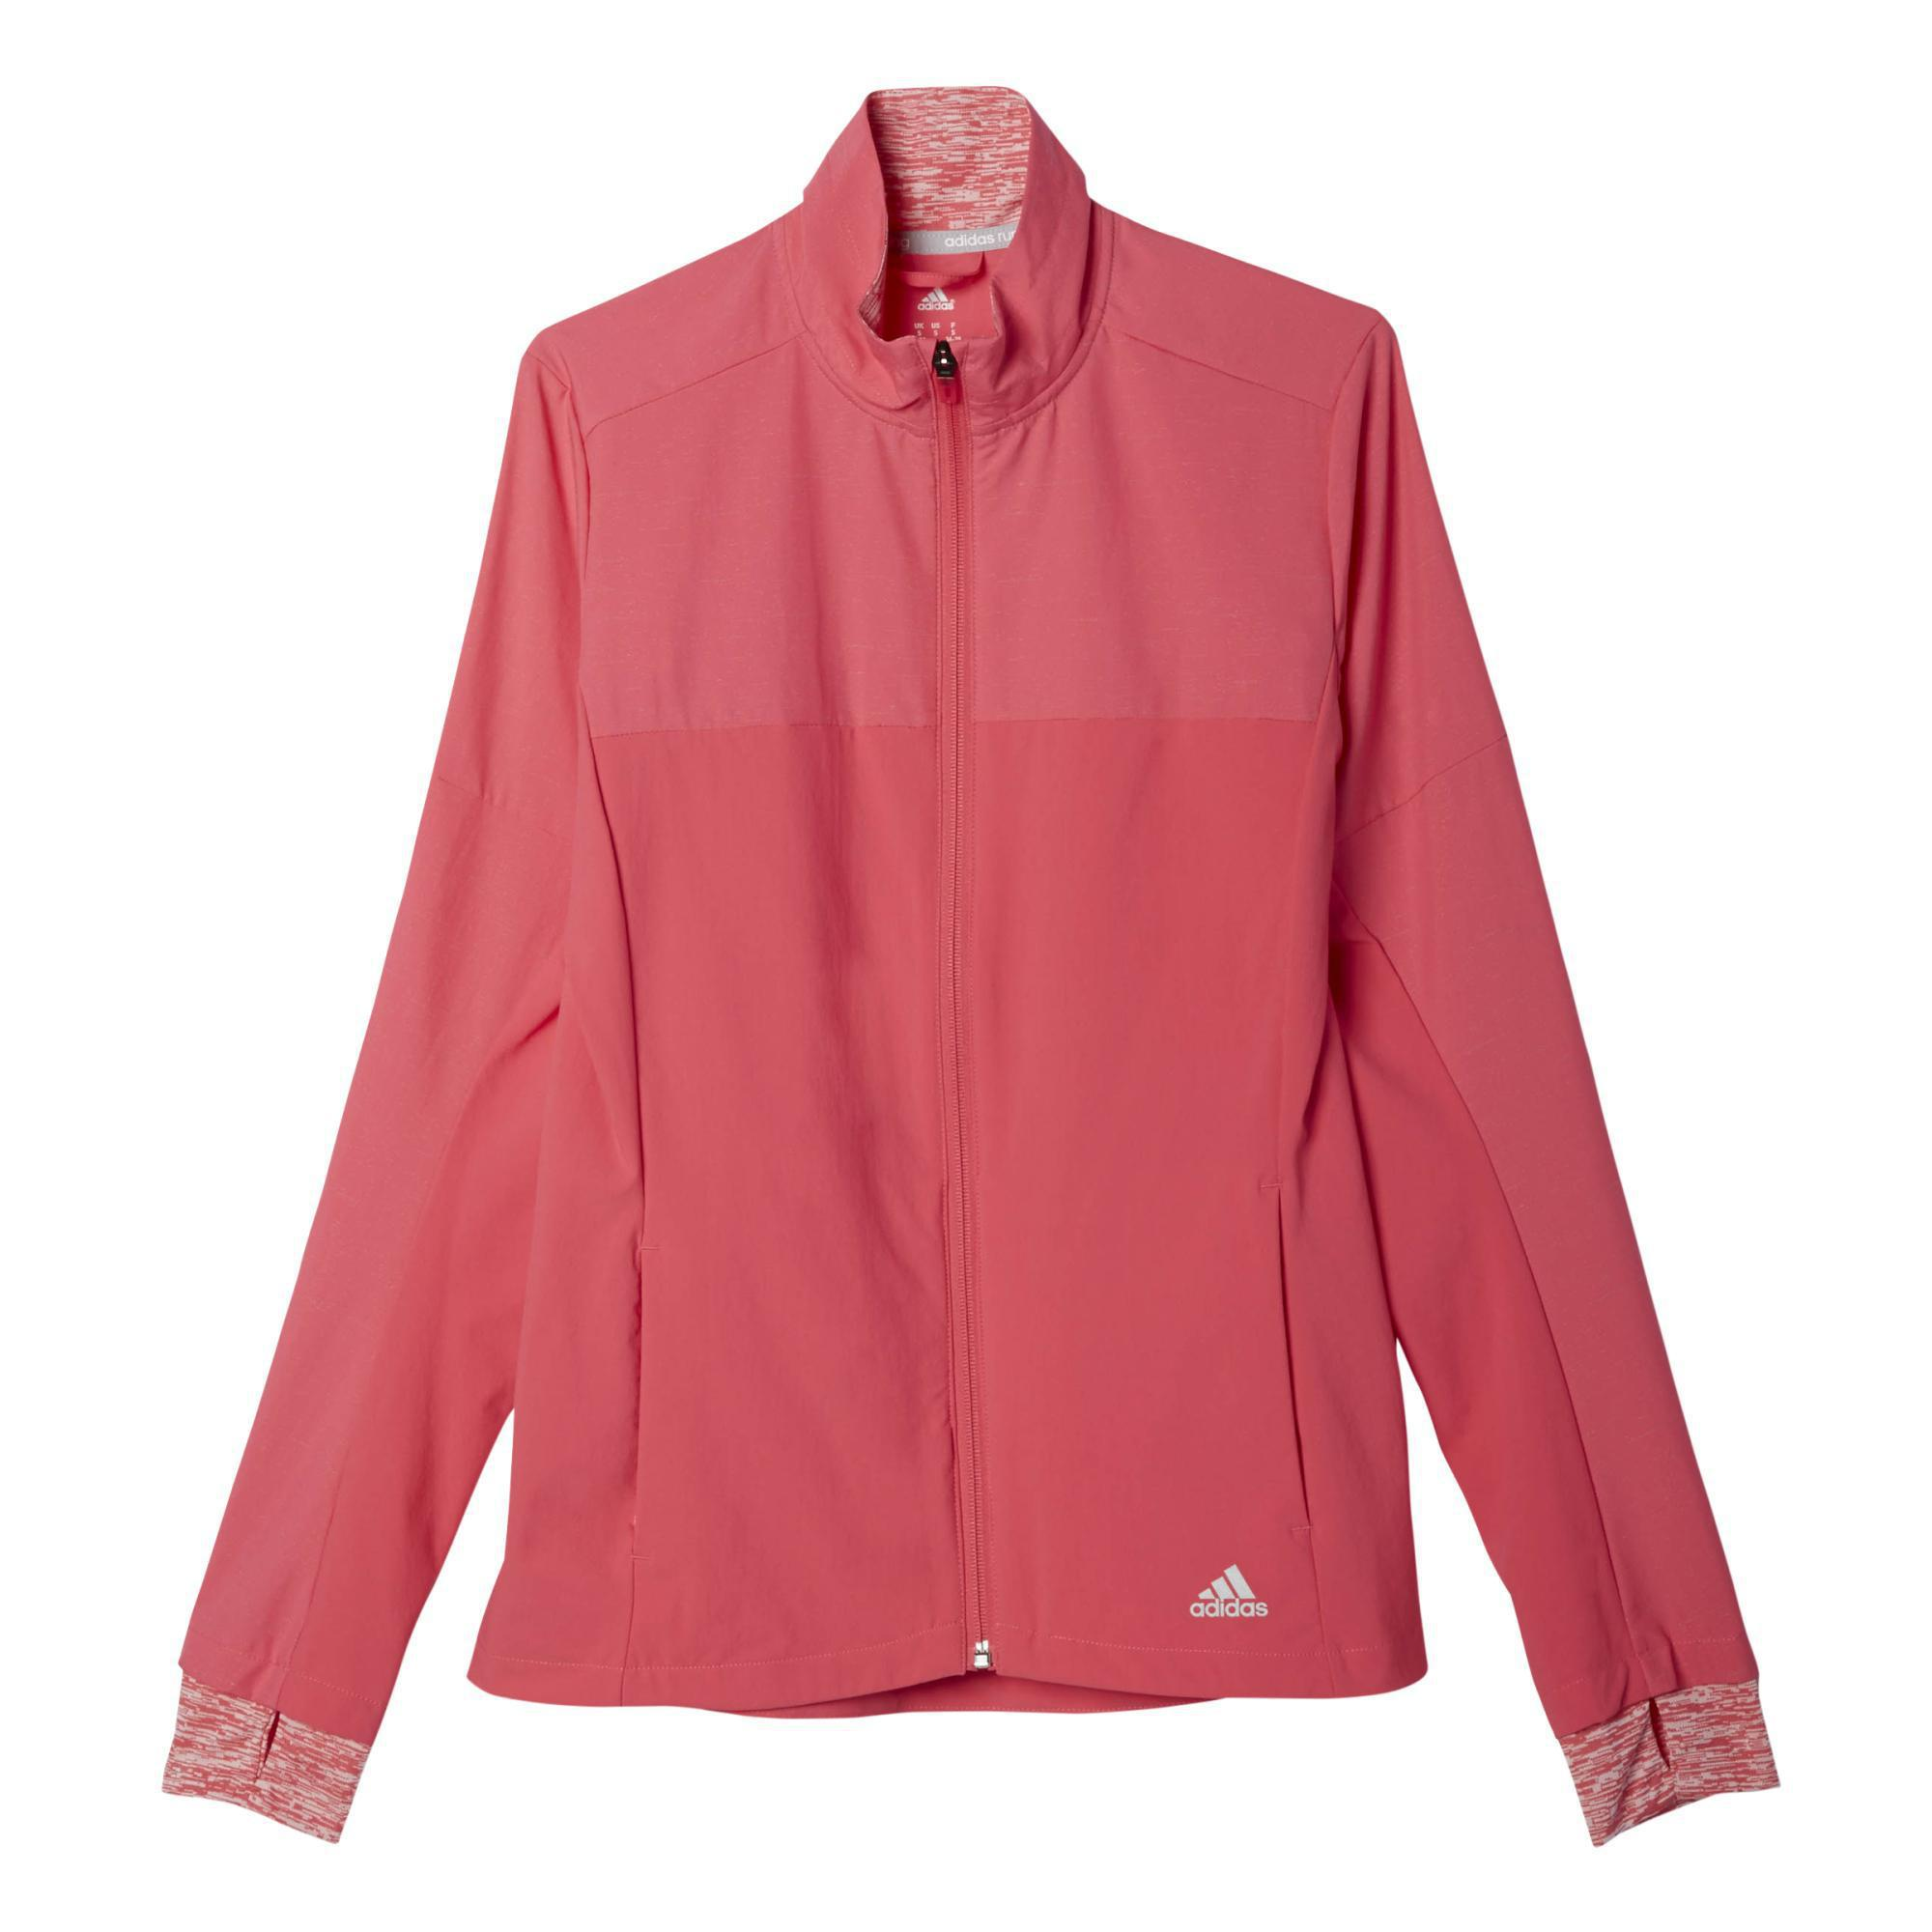 factory price cozy fresh quite nice Adidas Womens Supernova Storm Jacket - Super Pink